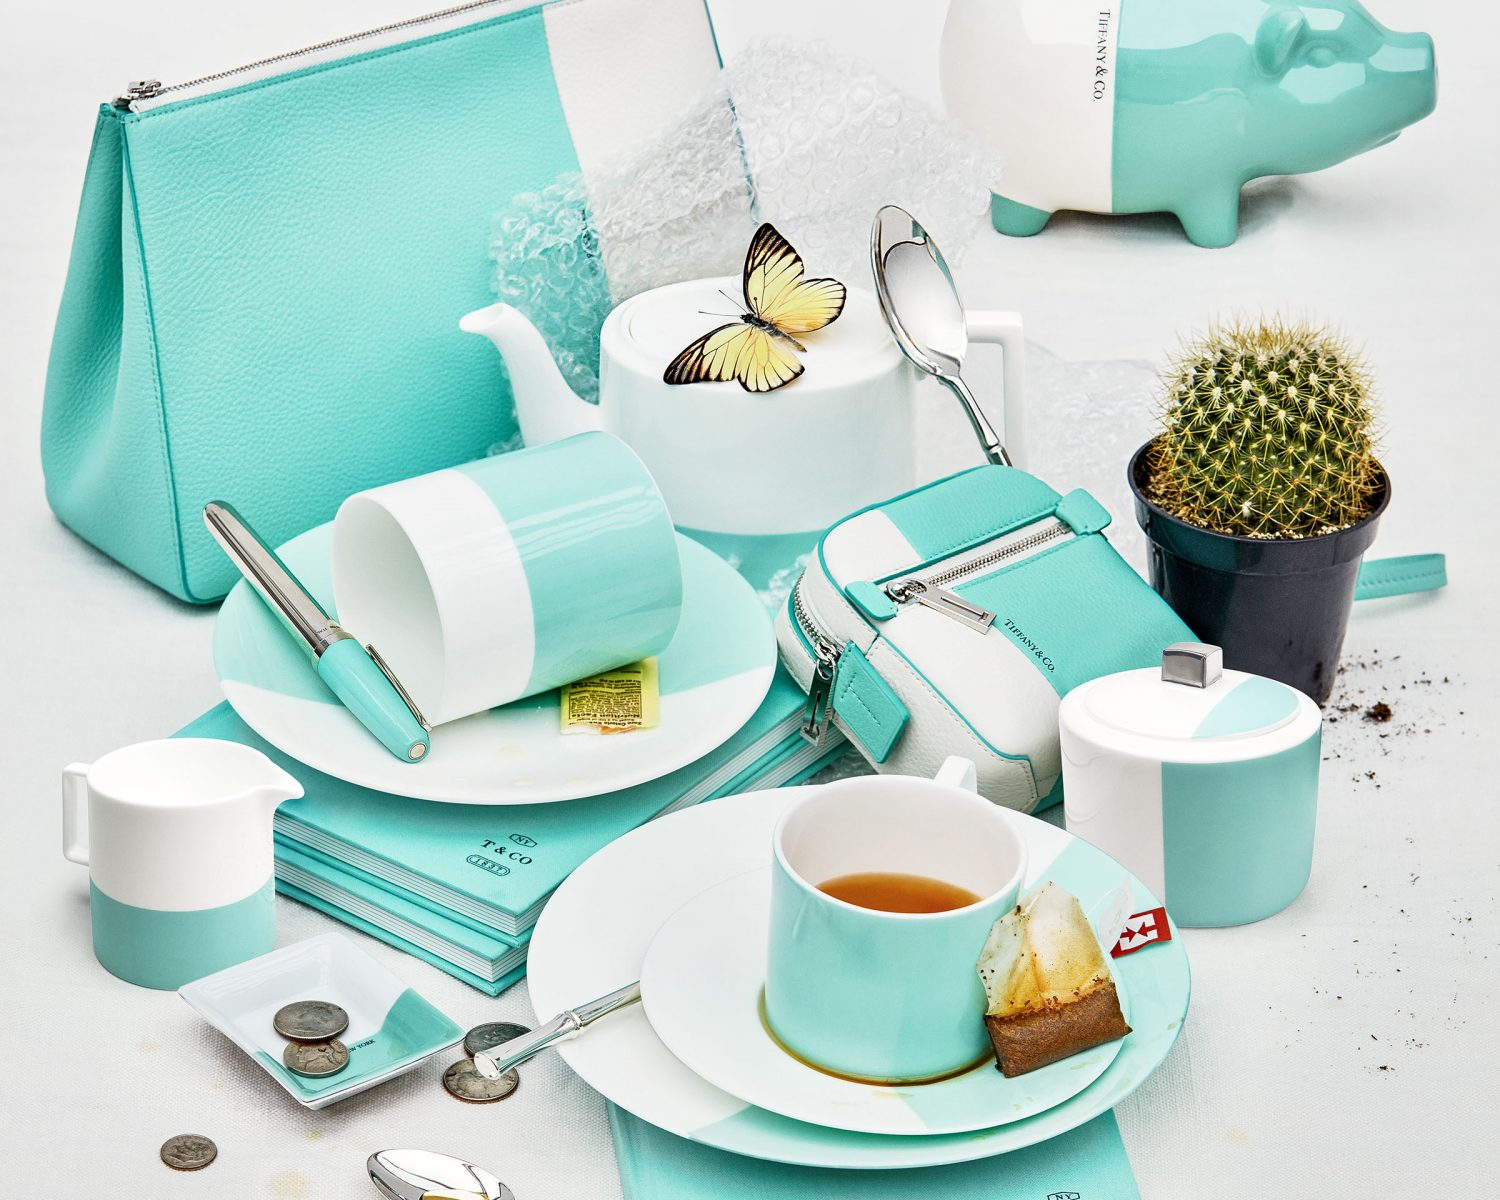 Tiffany Amp Co S Luxe New Home Line Is Here For Your Registry